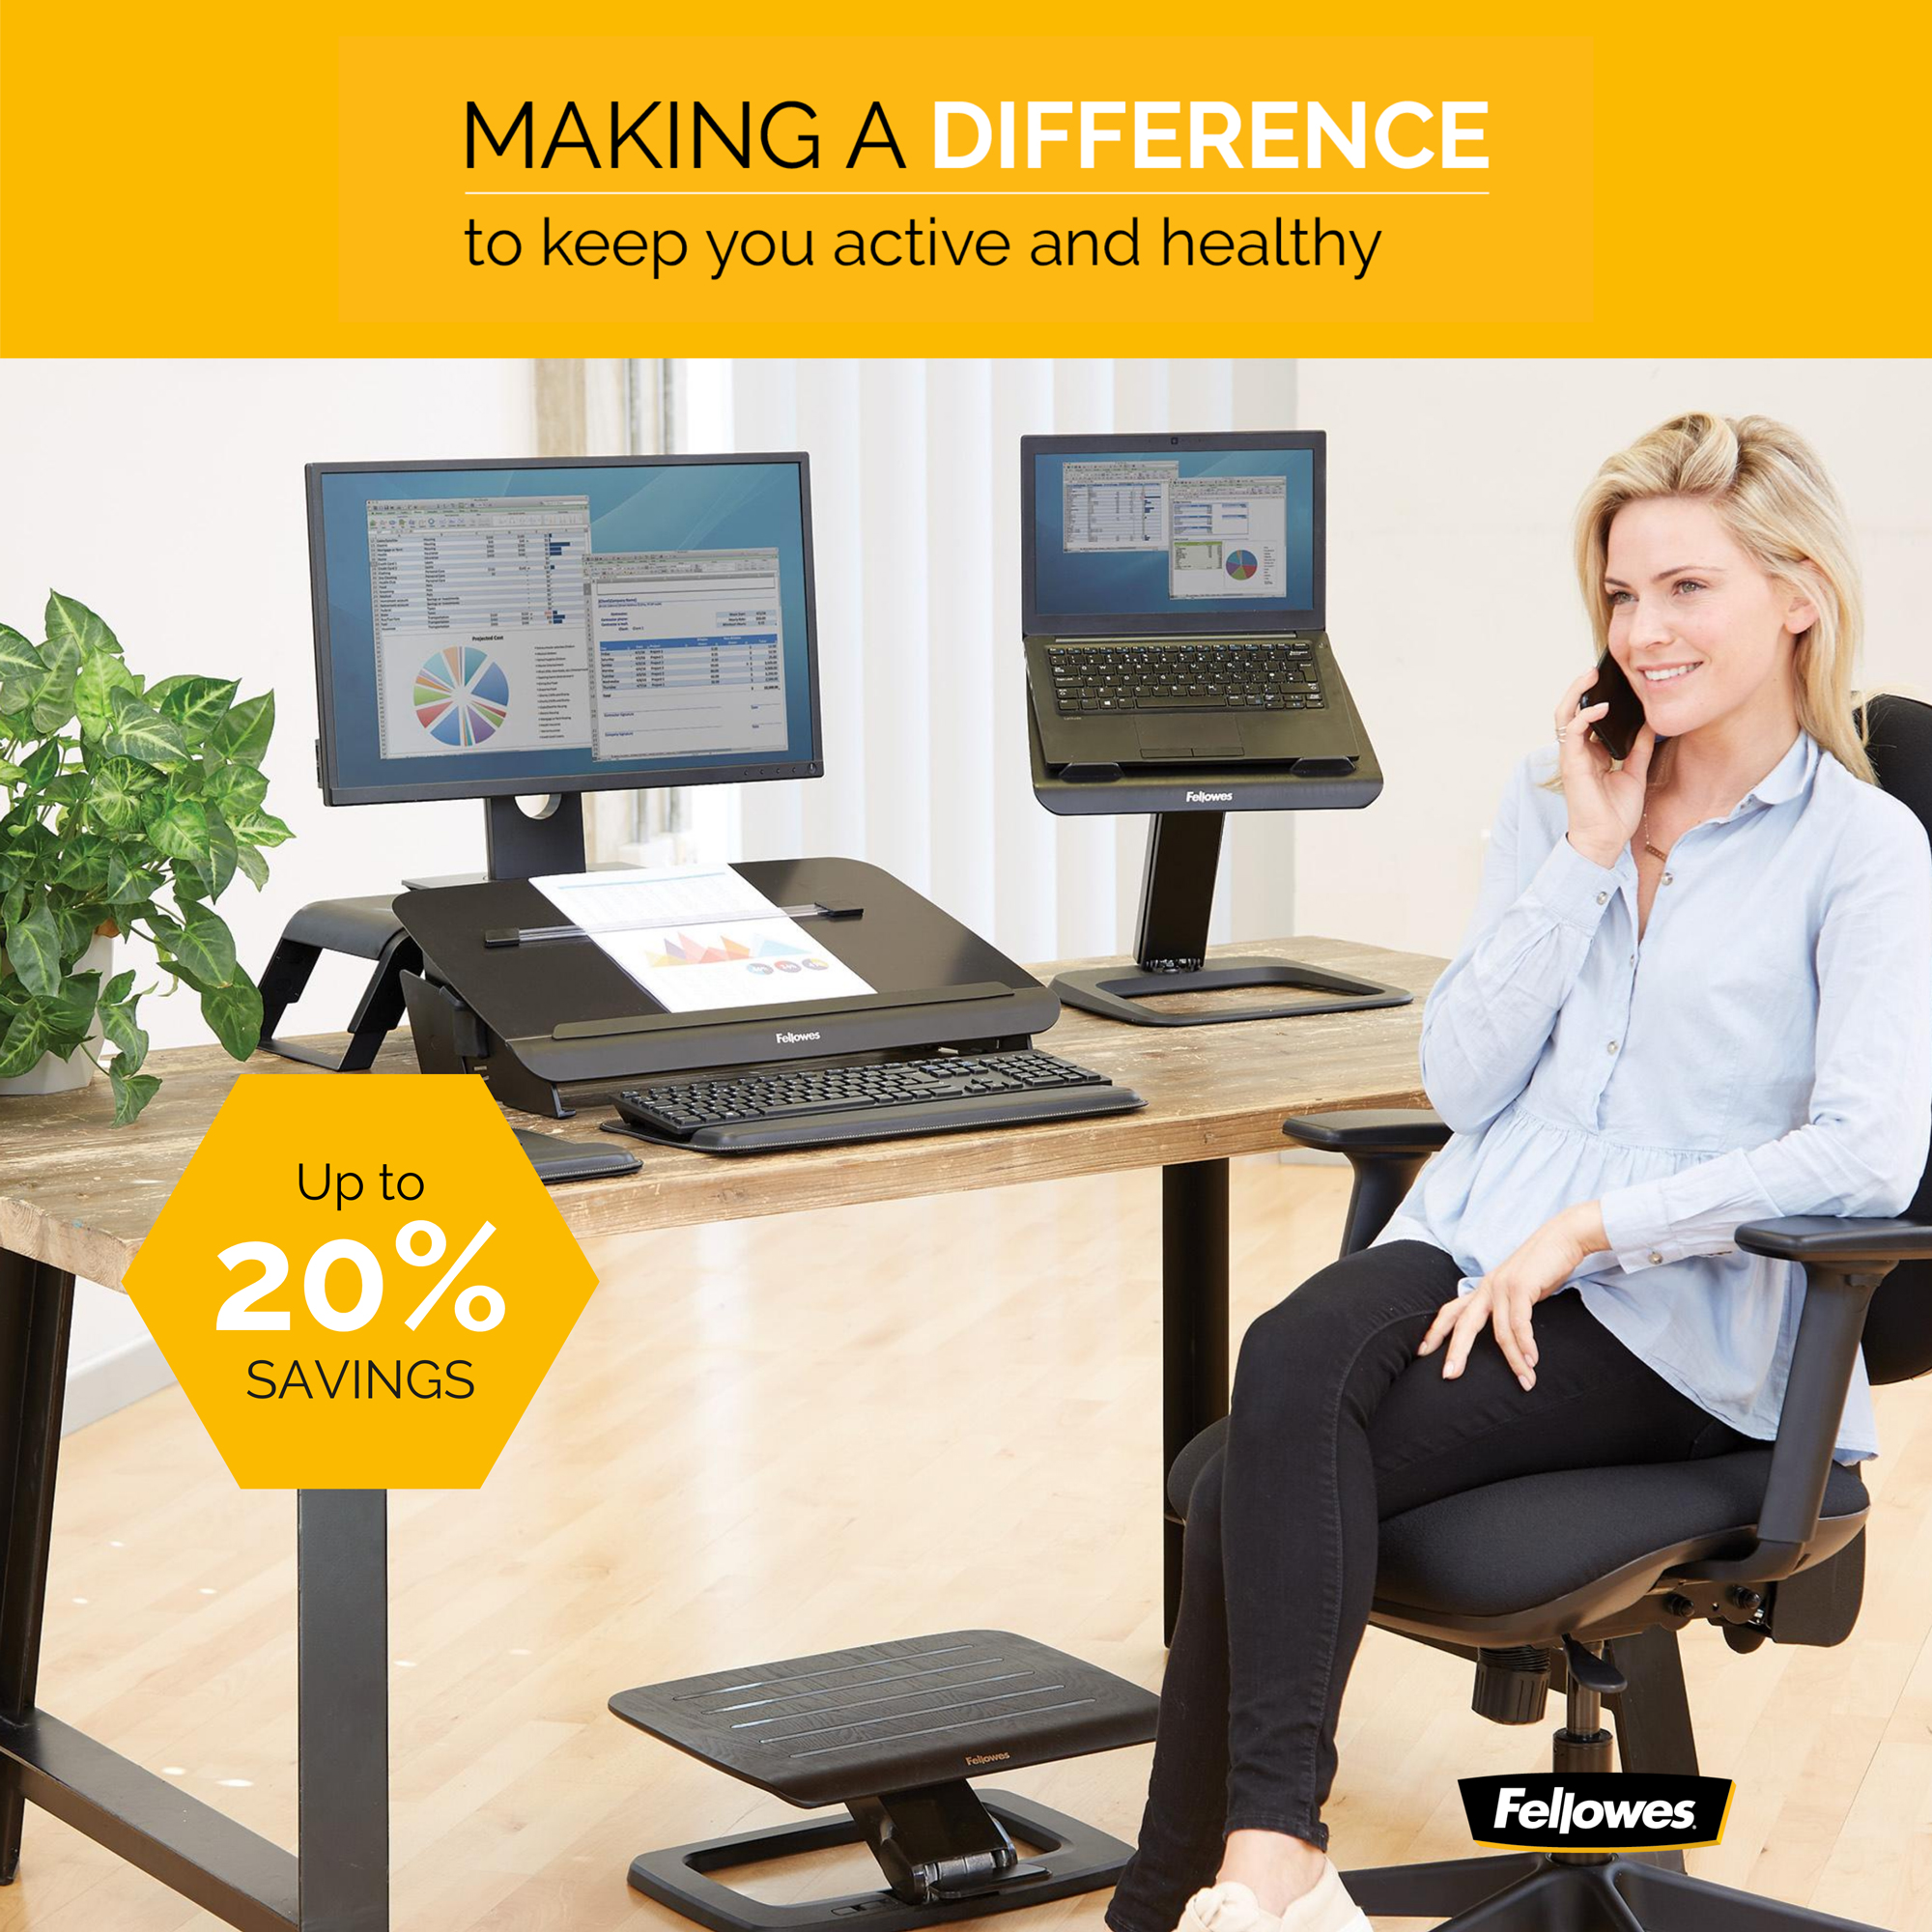 ergonomics products and text making a difference